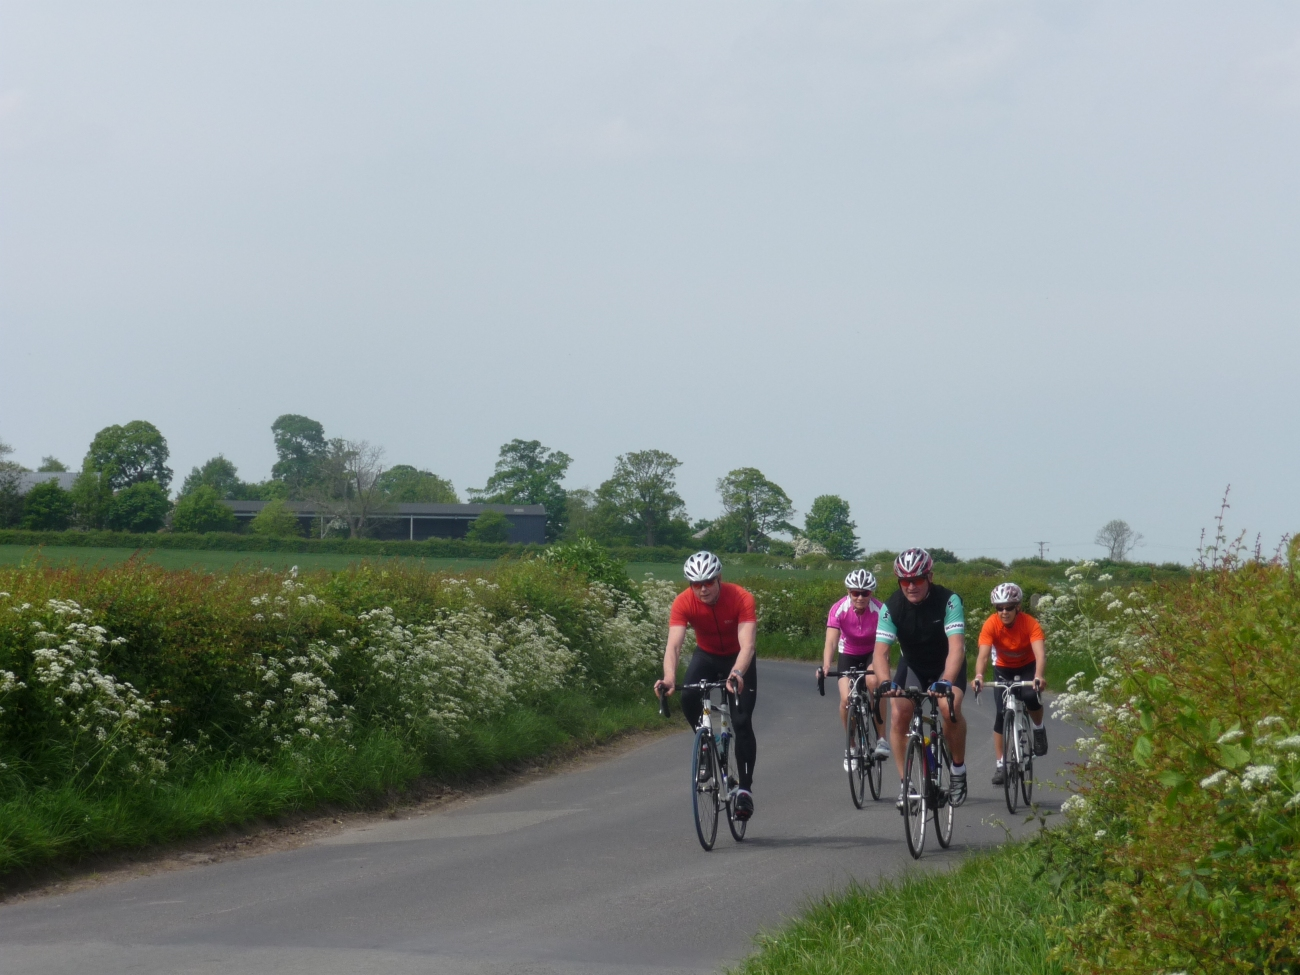 roseacre-route-cyclists-large-group